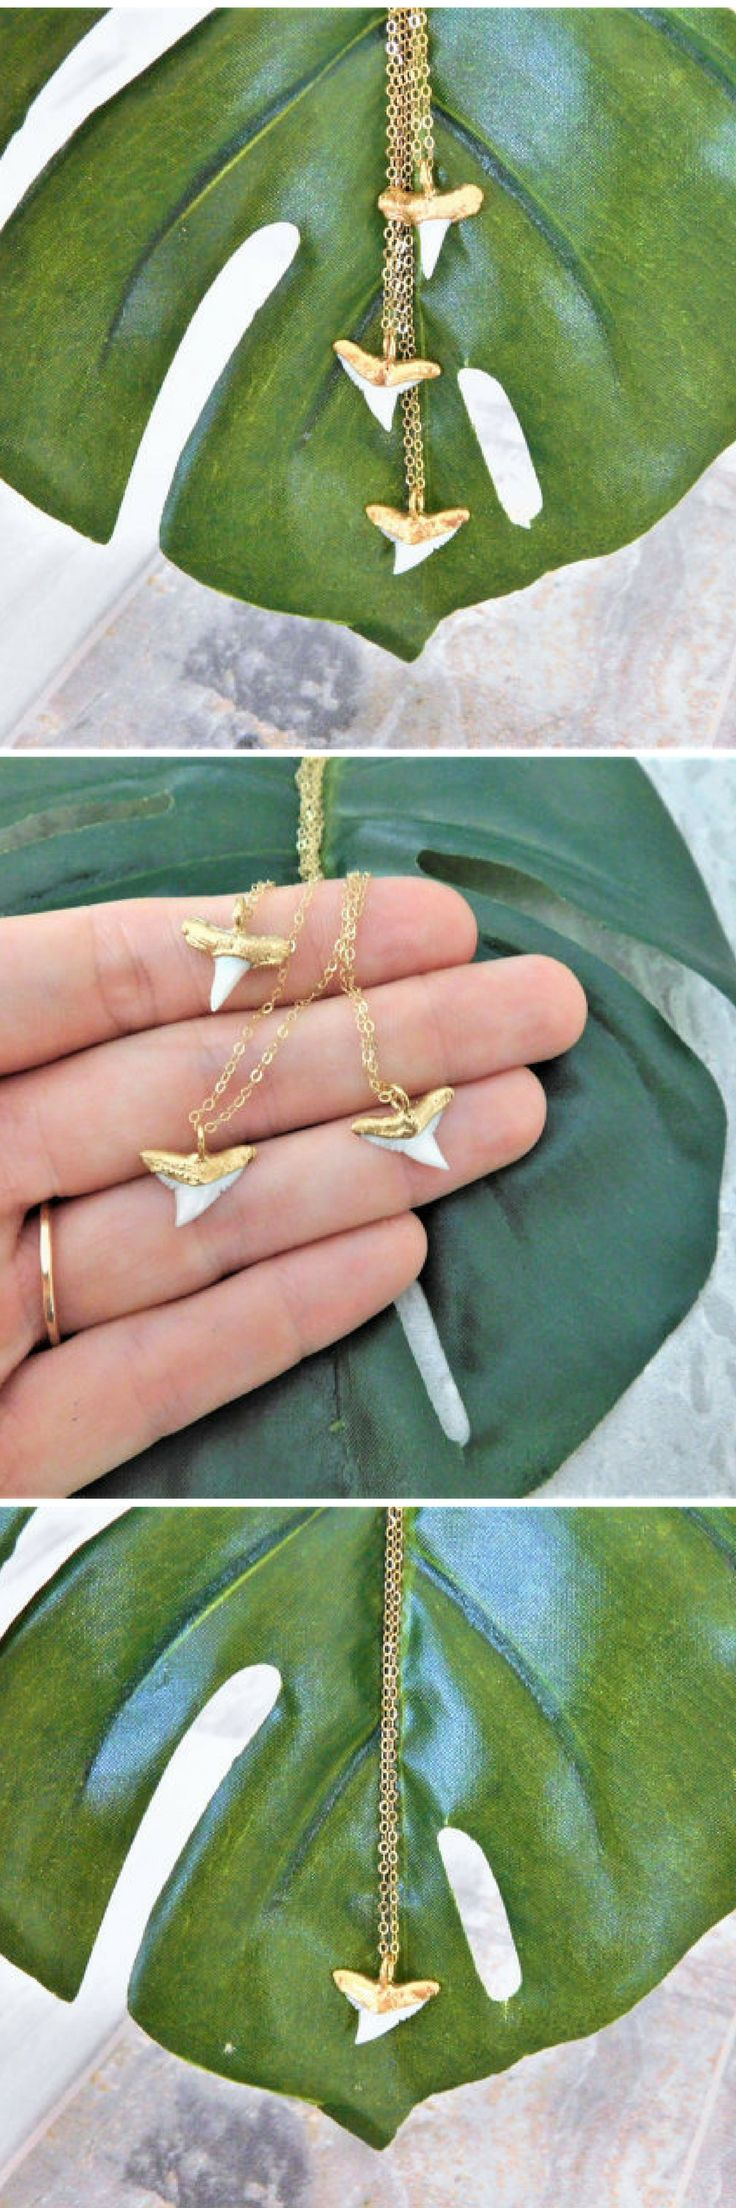 Gold Dipped Shark Tooth Necklace, White Shark Tooth Necklace, Dainty Shark Tooth Necklace, Shark Tooth Charm Necklace, Shark Tooth Jewelry, Shark Teeth Jewelry, Shark Tooth, Shark Tooth Choker, Boho Choker, Summer Choker, Beach Choker, Beach Necklace, Summer Neckalce, Gold Dipped Neckalce, Electroformed Necklace, Shark Tooth Necklace